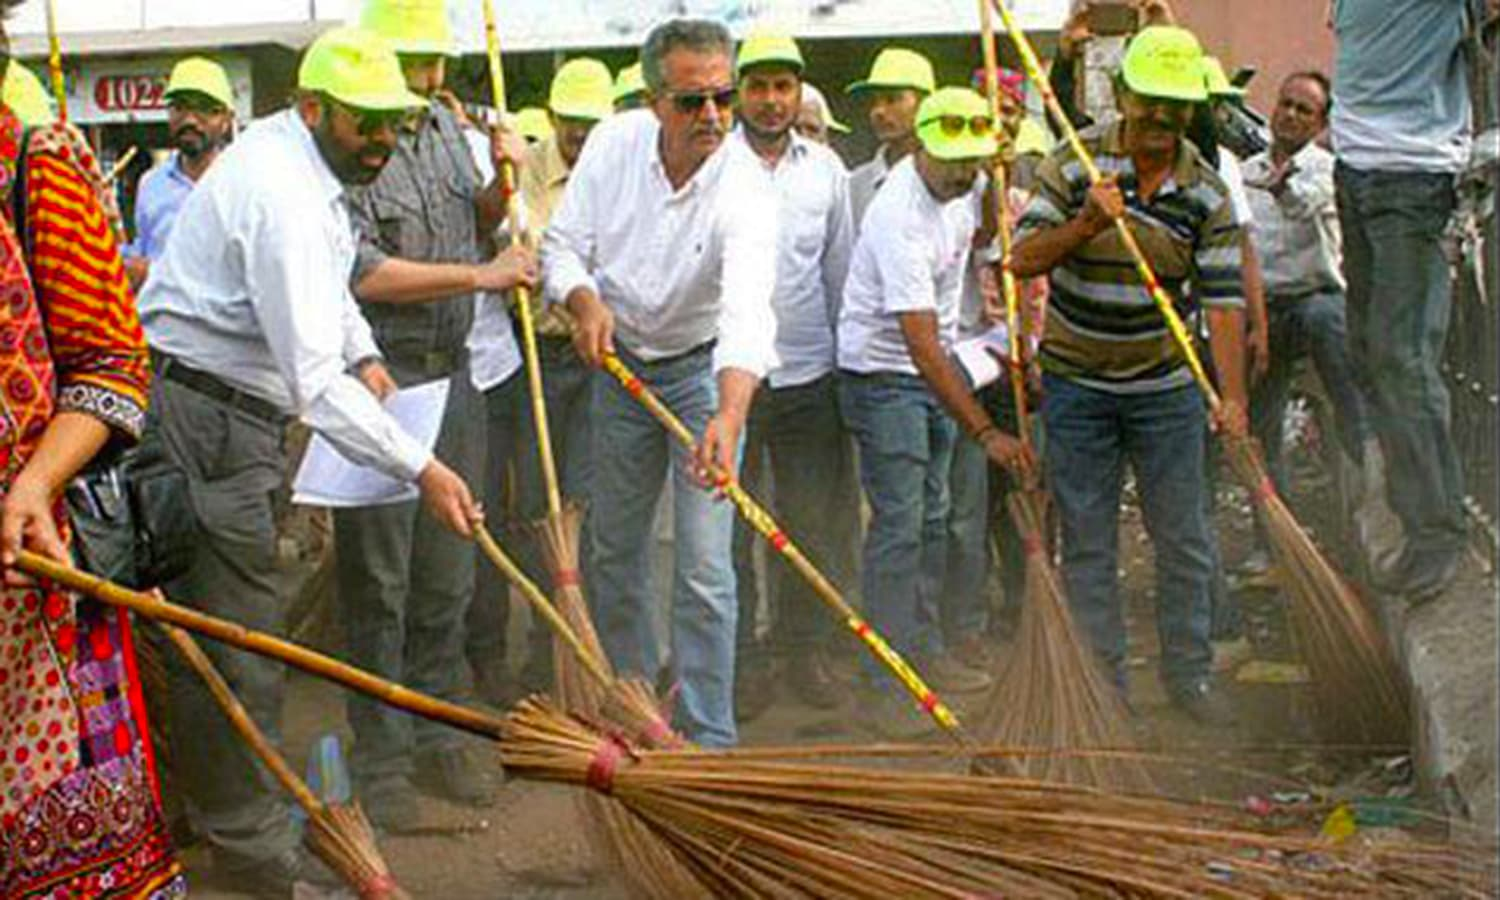 The mayor of Karachi, Wasim Akhtar, during MQM's 'Clean Karachi' campaign. (Photo: The Pakistan Herald)